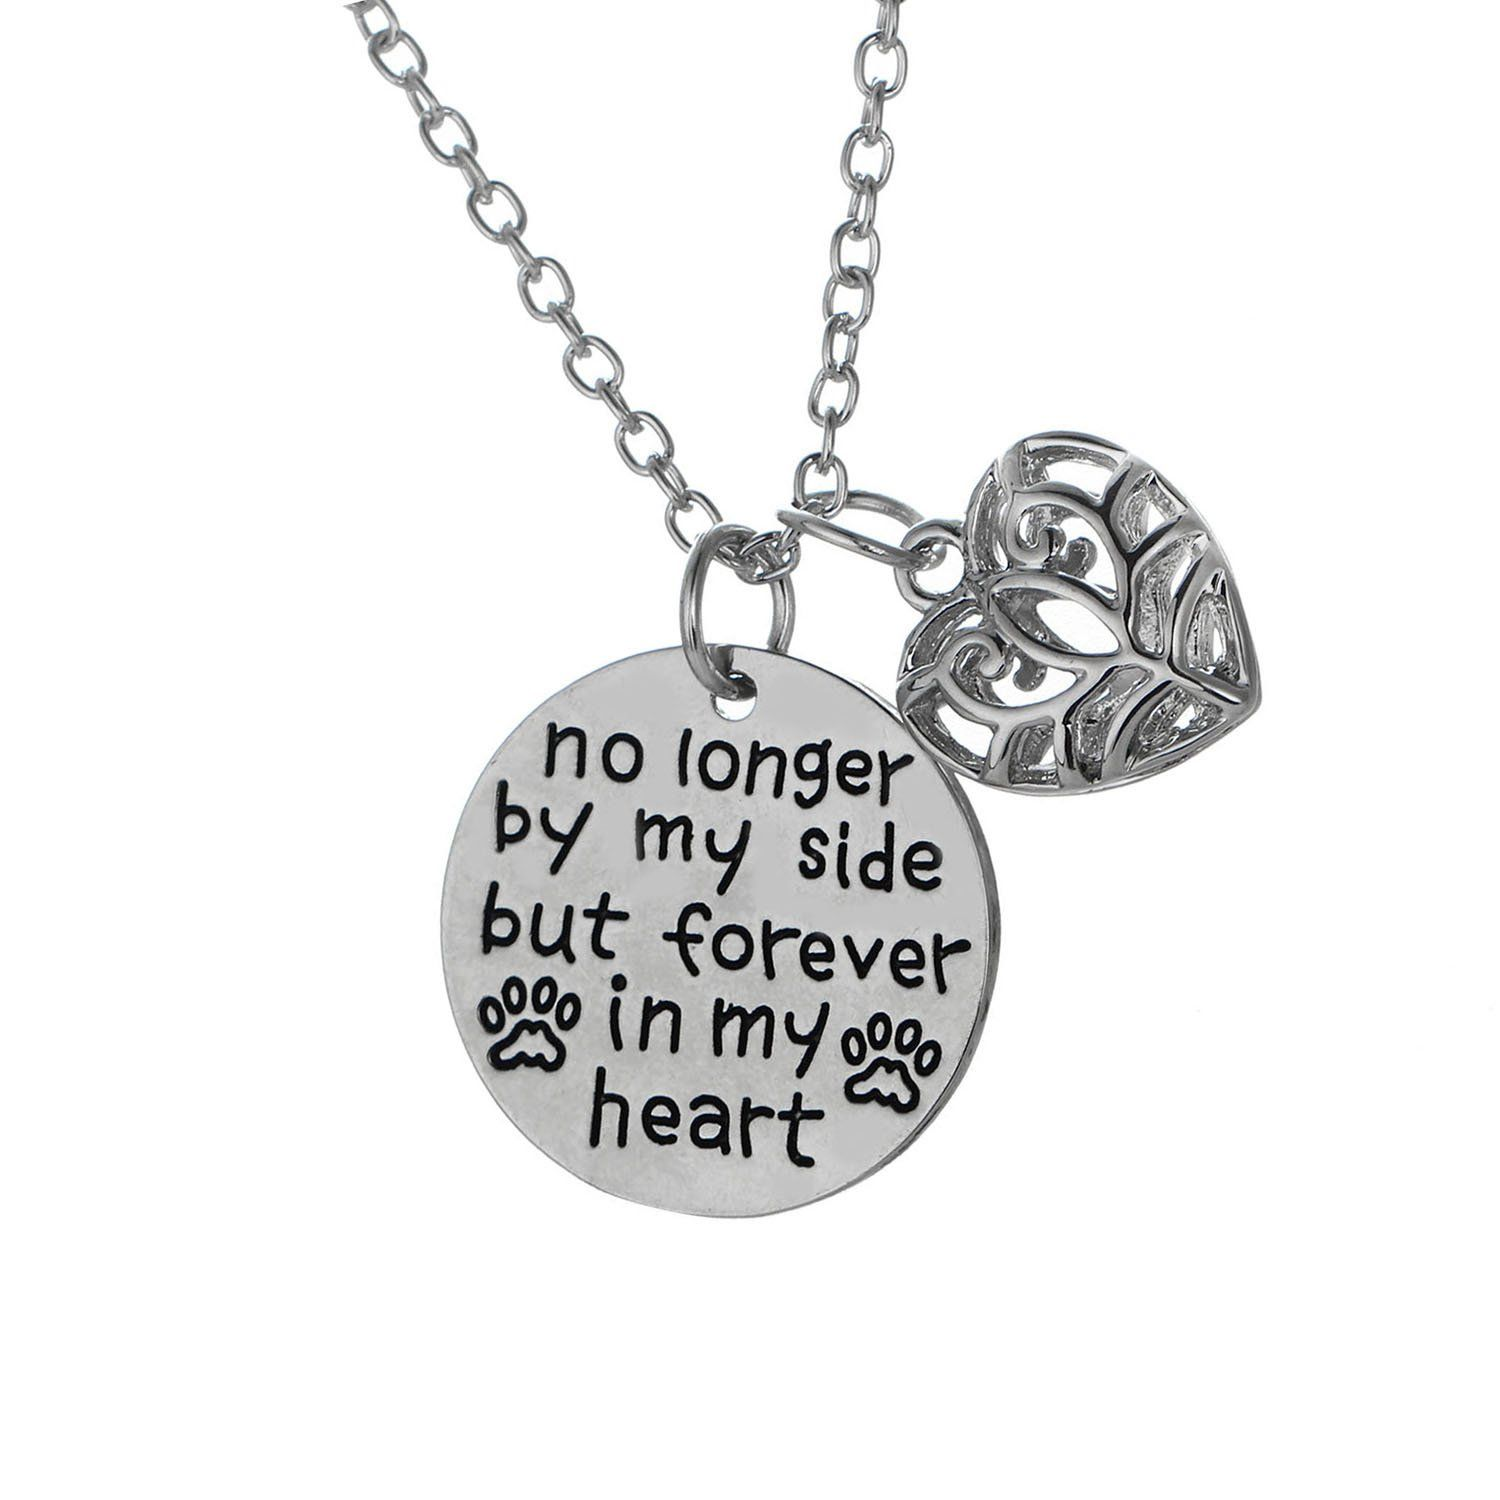 MayLove No Longer by My Side Forever in My Heart Necklace Hollow Heart Pendant Inspirational Jewelry